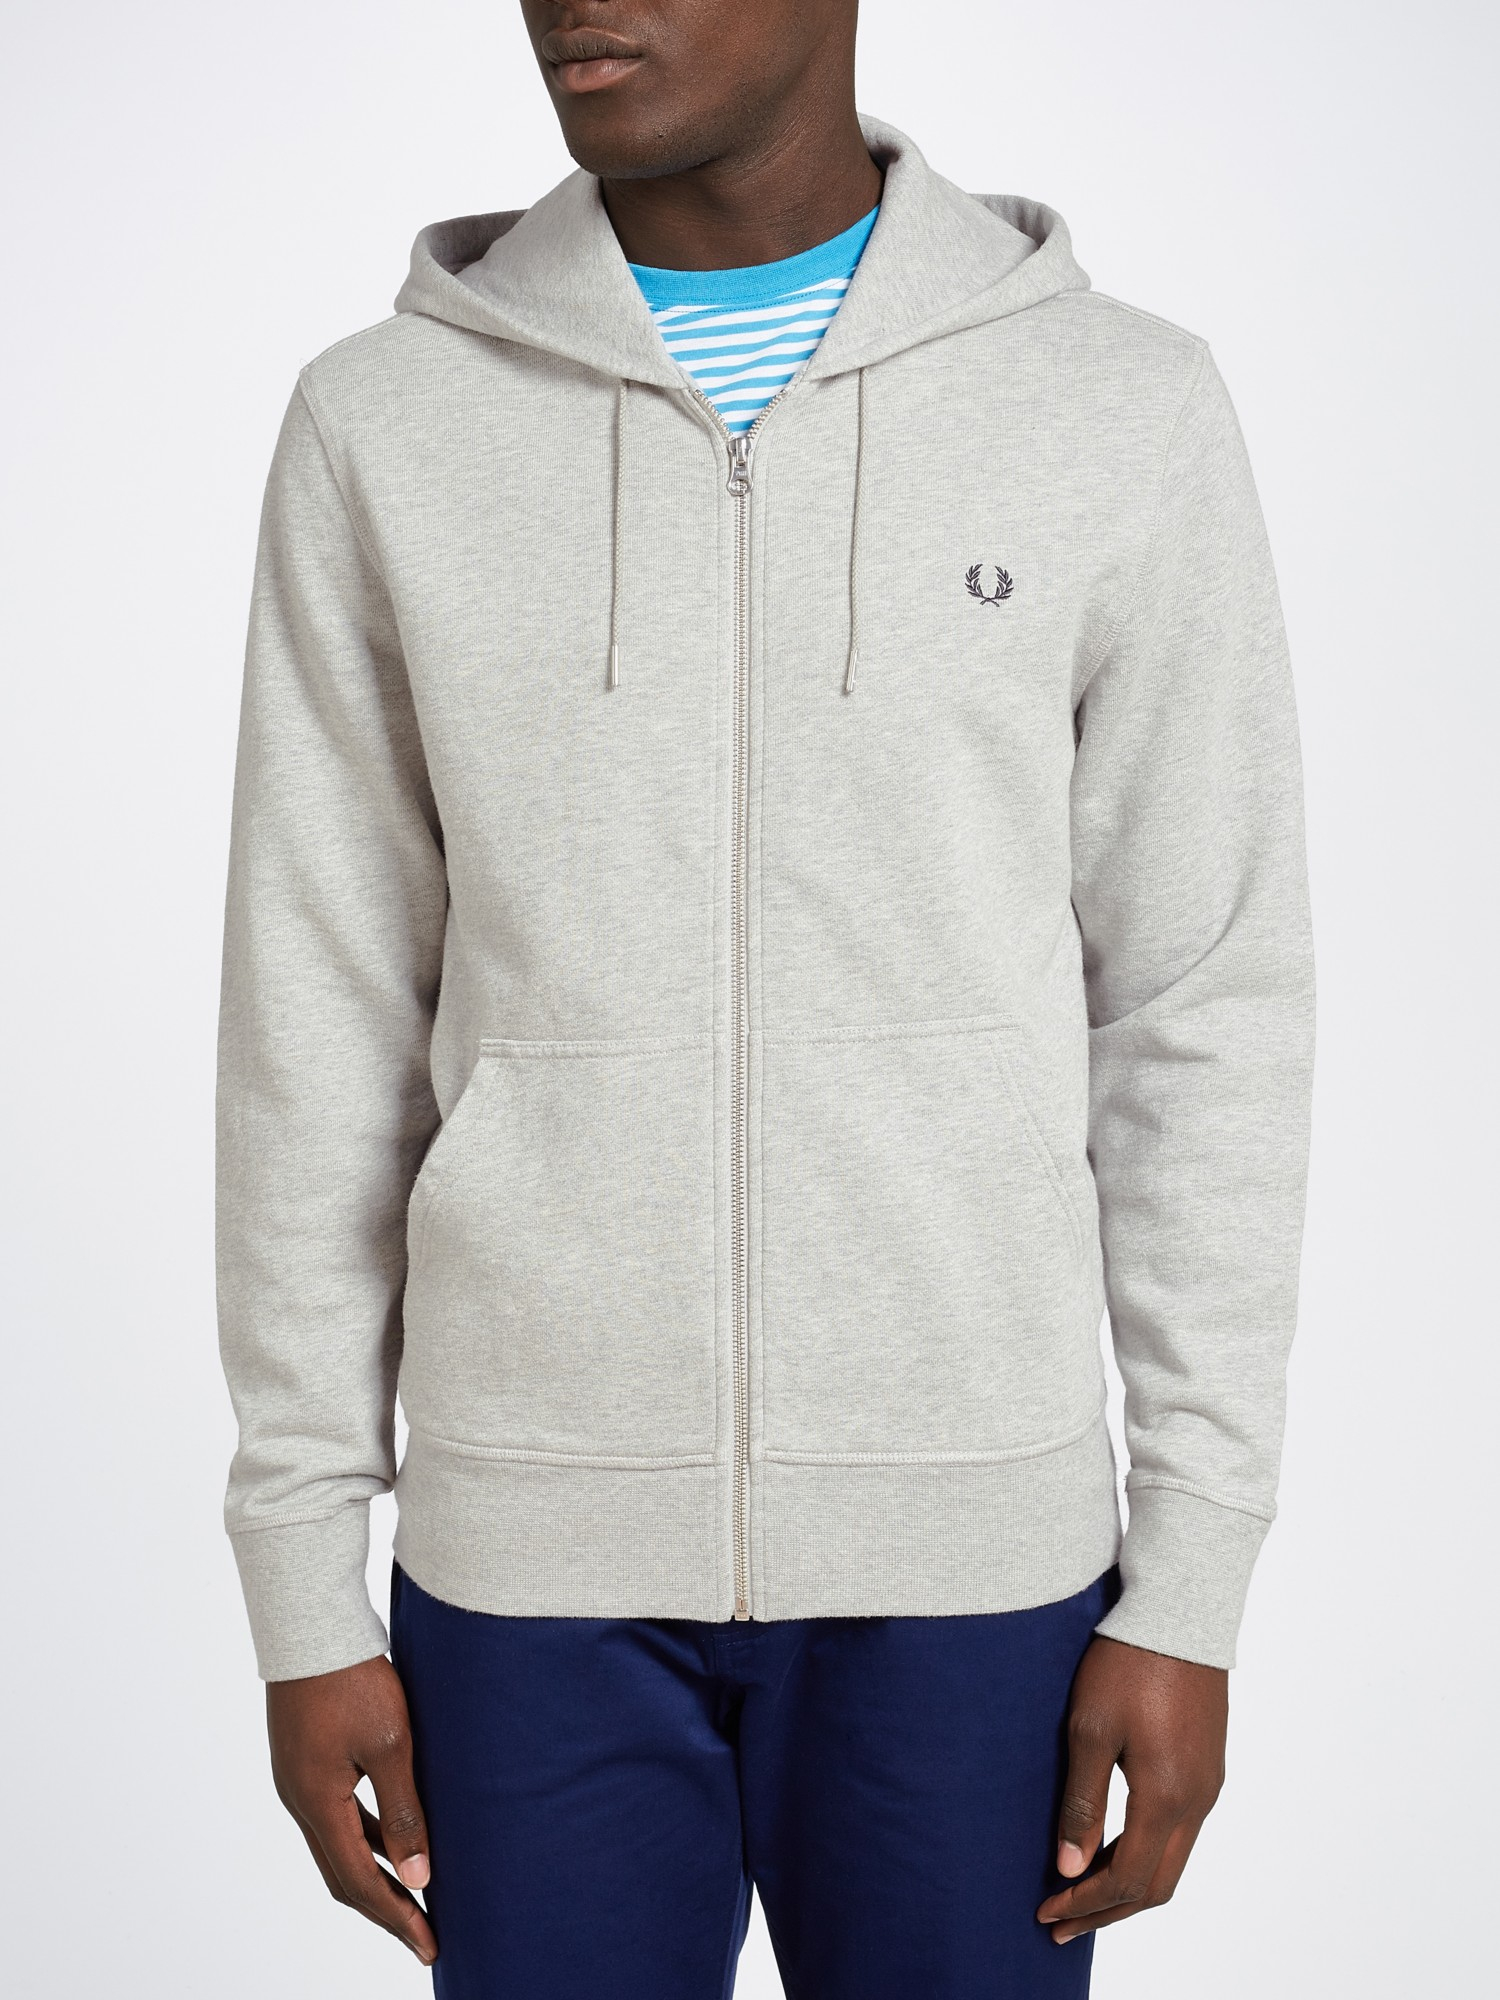 fred perry full zip loopback hoodie in gray for men lyst. Black Bedroom Furniture Sets. Home Design Ideas